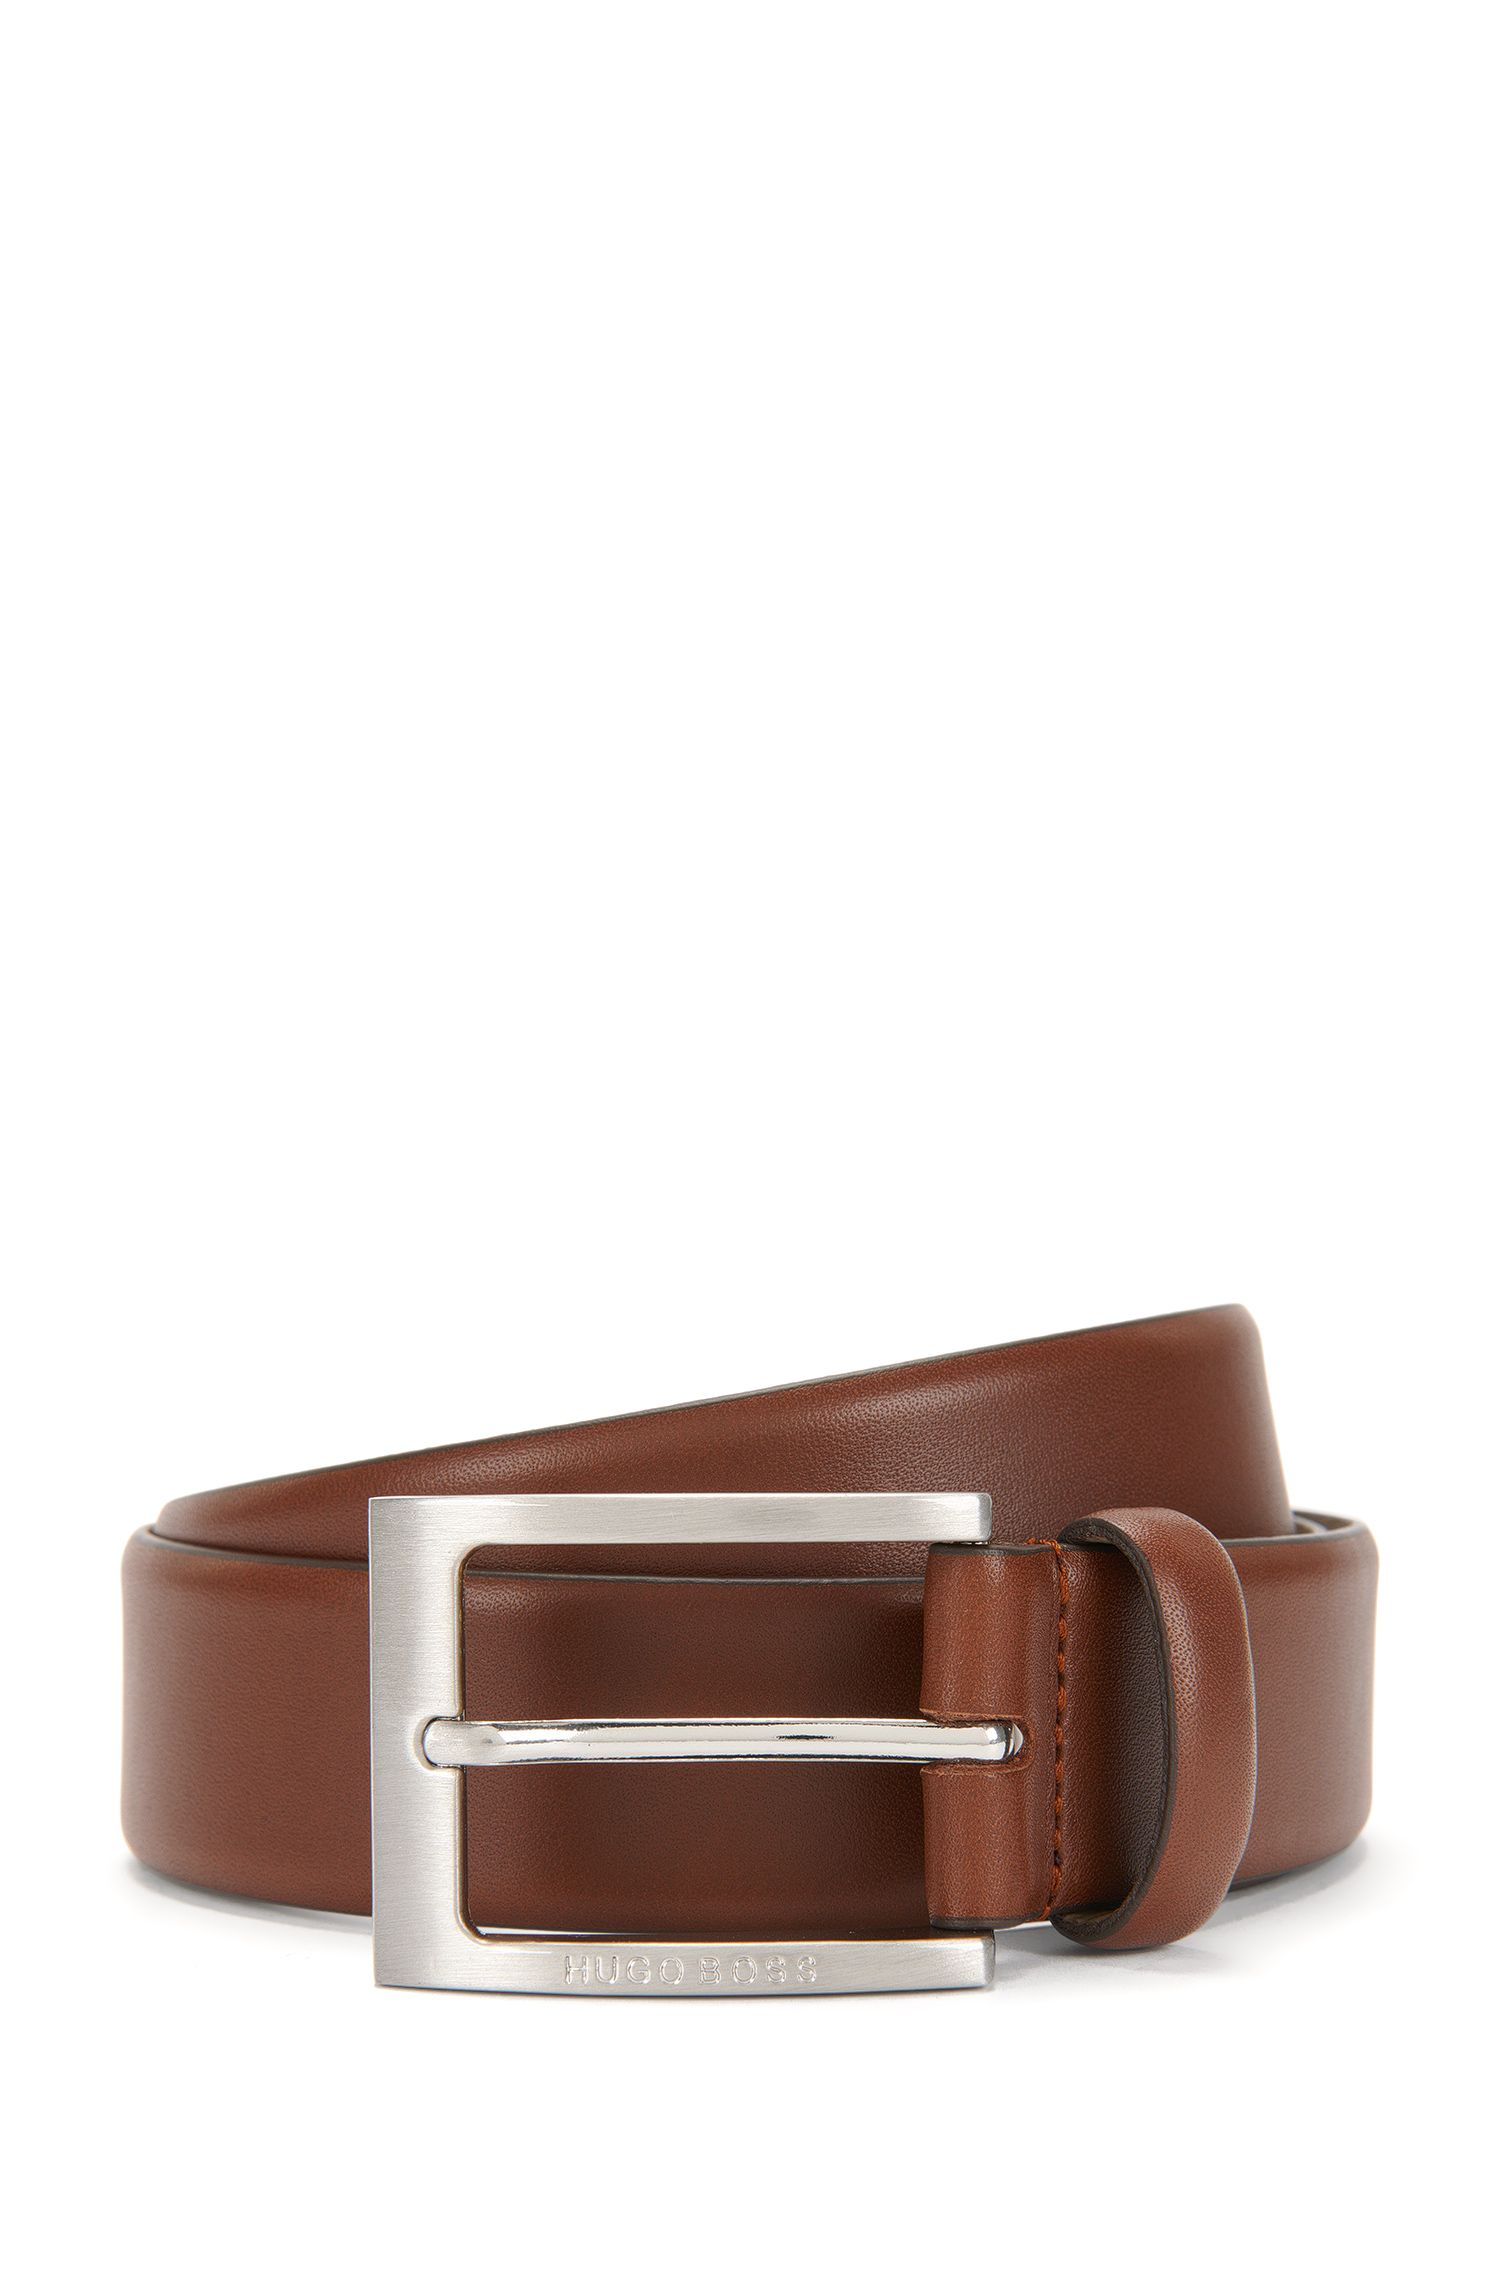 Leather belt with brushed-silver pin buckle by BOSS Menswear